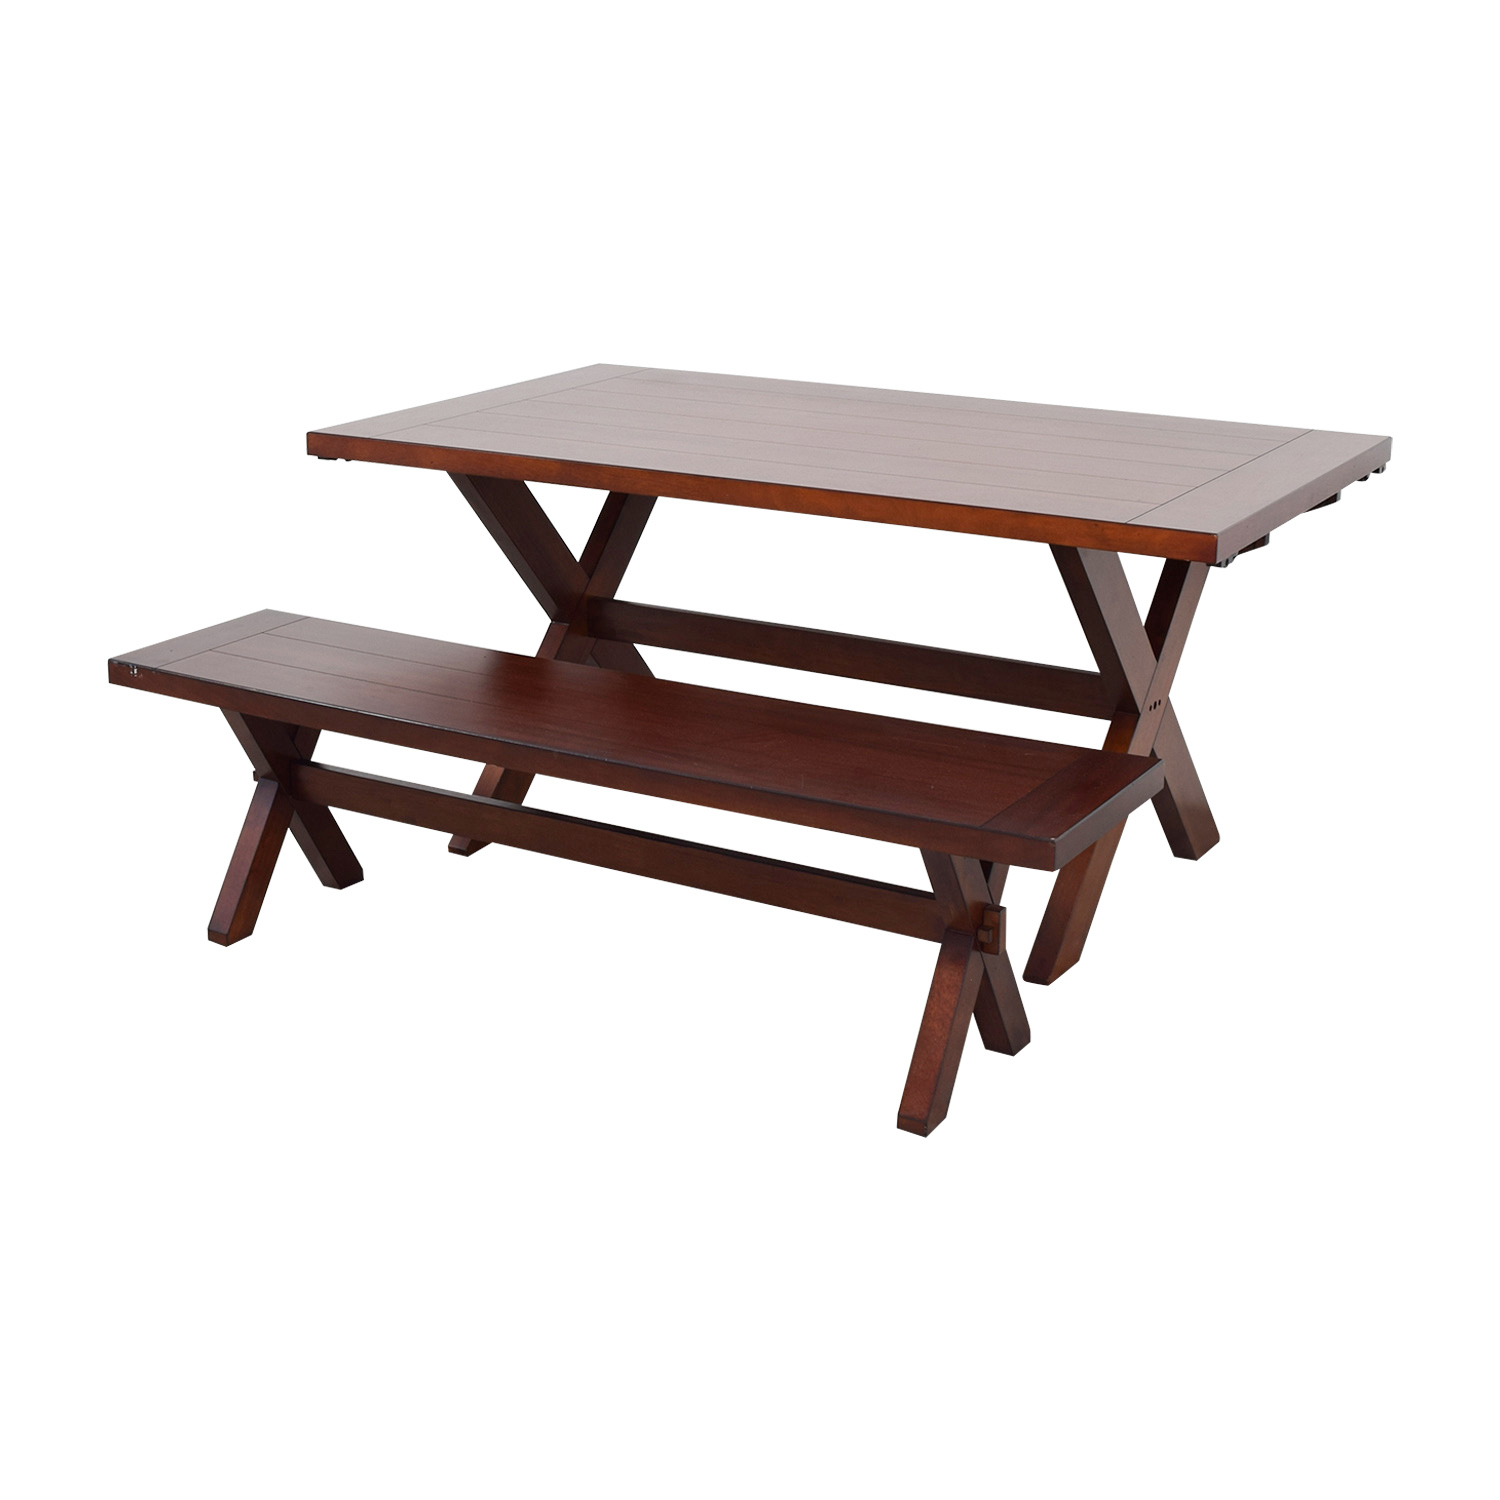 Remarkable 90 Off Pier 1 Pier 1 Imports Nolan Wood Dining Table With Bench Tables Ocoug Best Dining Table And Chair Ideas Images Ocougorg